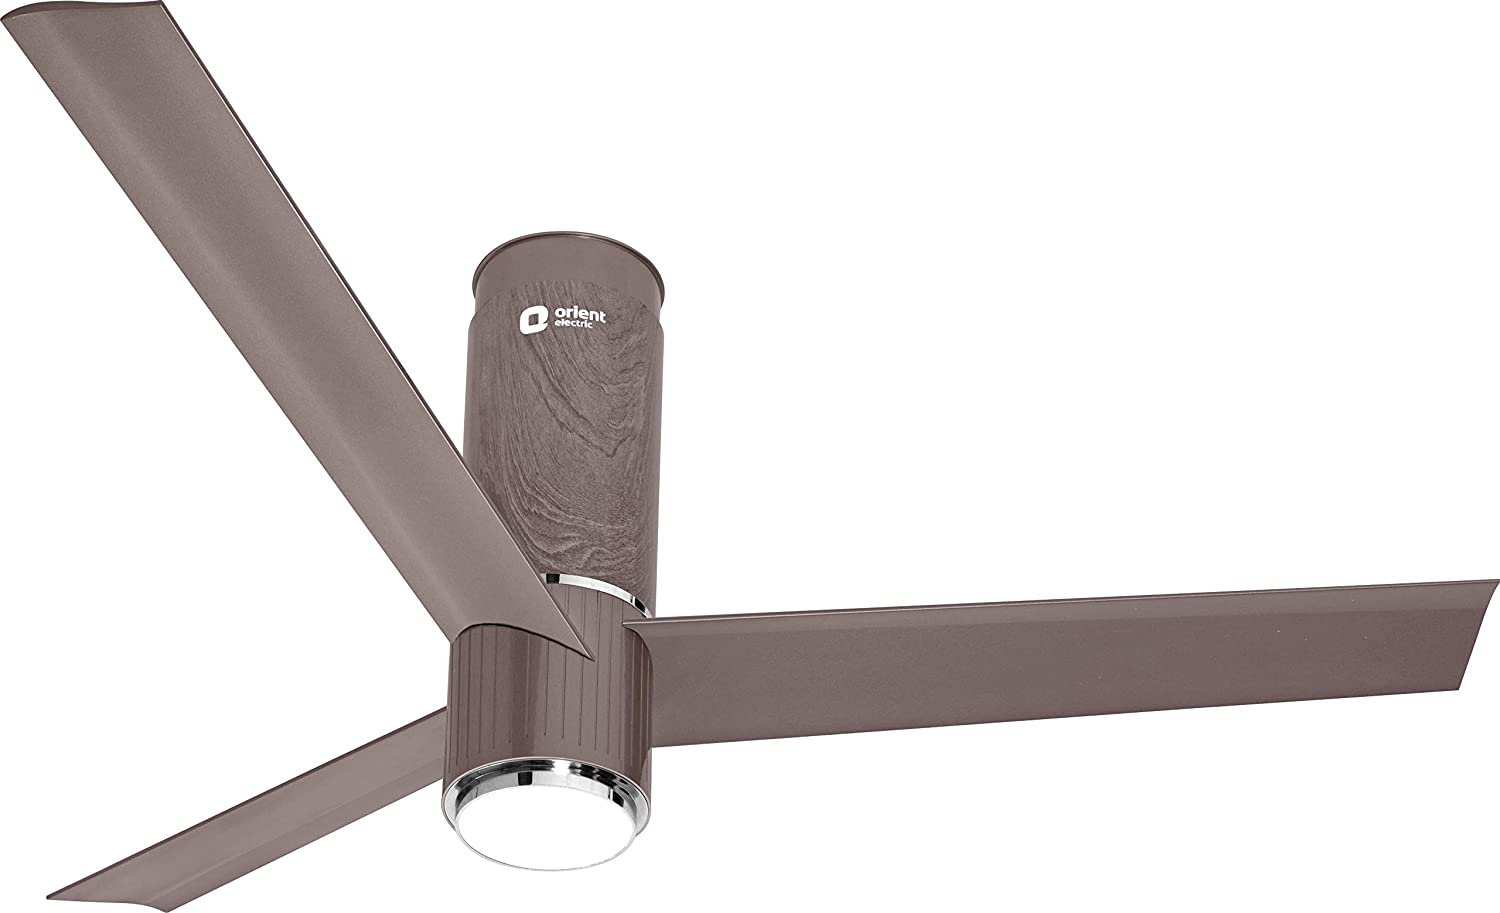 Orient Electric Aeroslim 1200mm Smart Premium Ceiling Fan with IOT, Remote & Underlight (Champagne Brown)